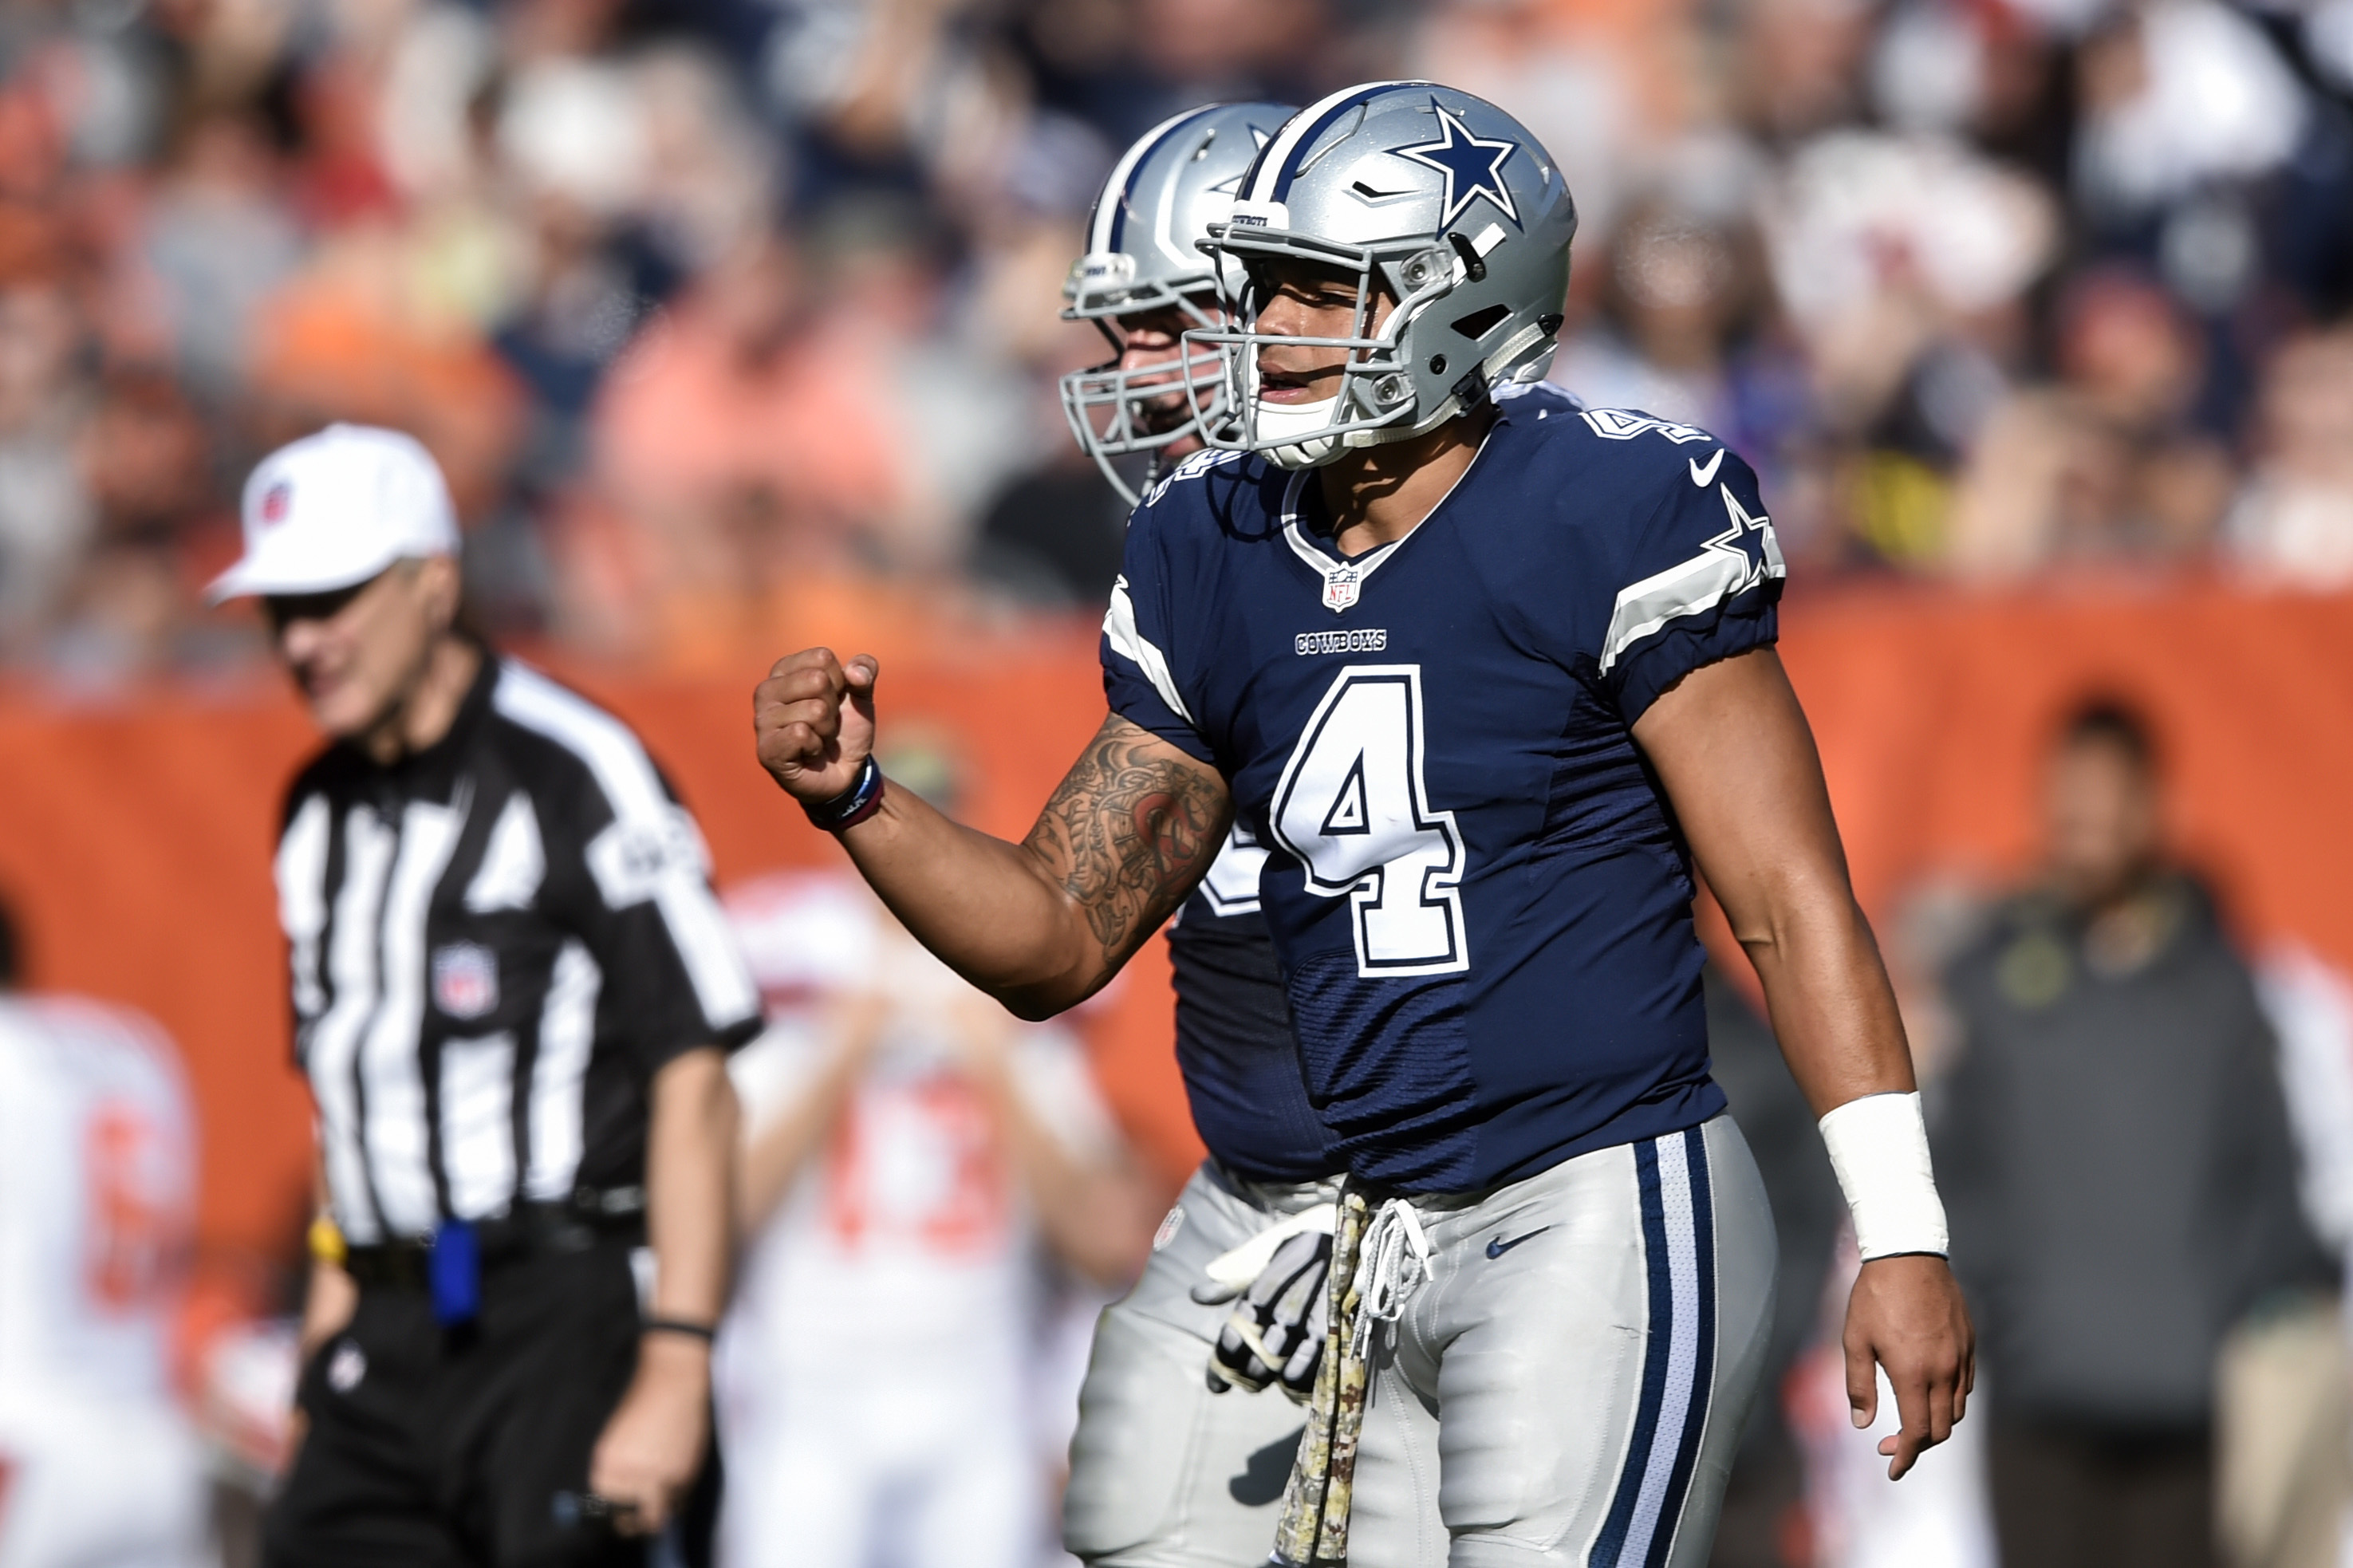 Dallas Cowboys quarterback Dak Prescott (4) reacts after tight end Jason Witten scored a touchdown in the first half of an NFL football game against the Cleveland Browns, Sunday, Nov. 6, 2016, in Cleveland. (AP Photo/David Richard)